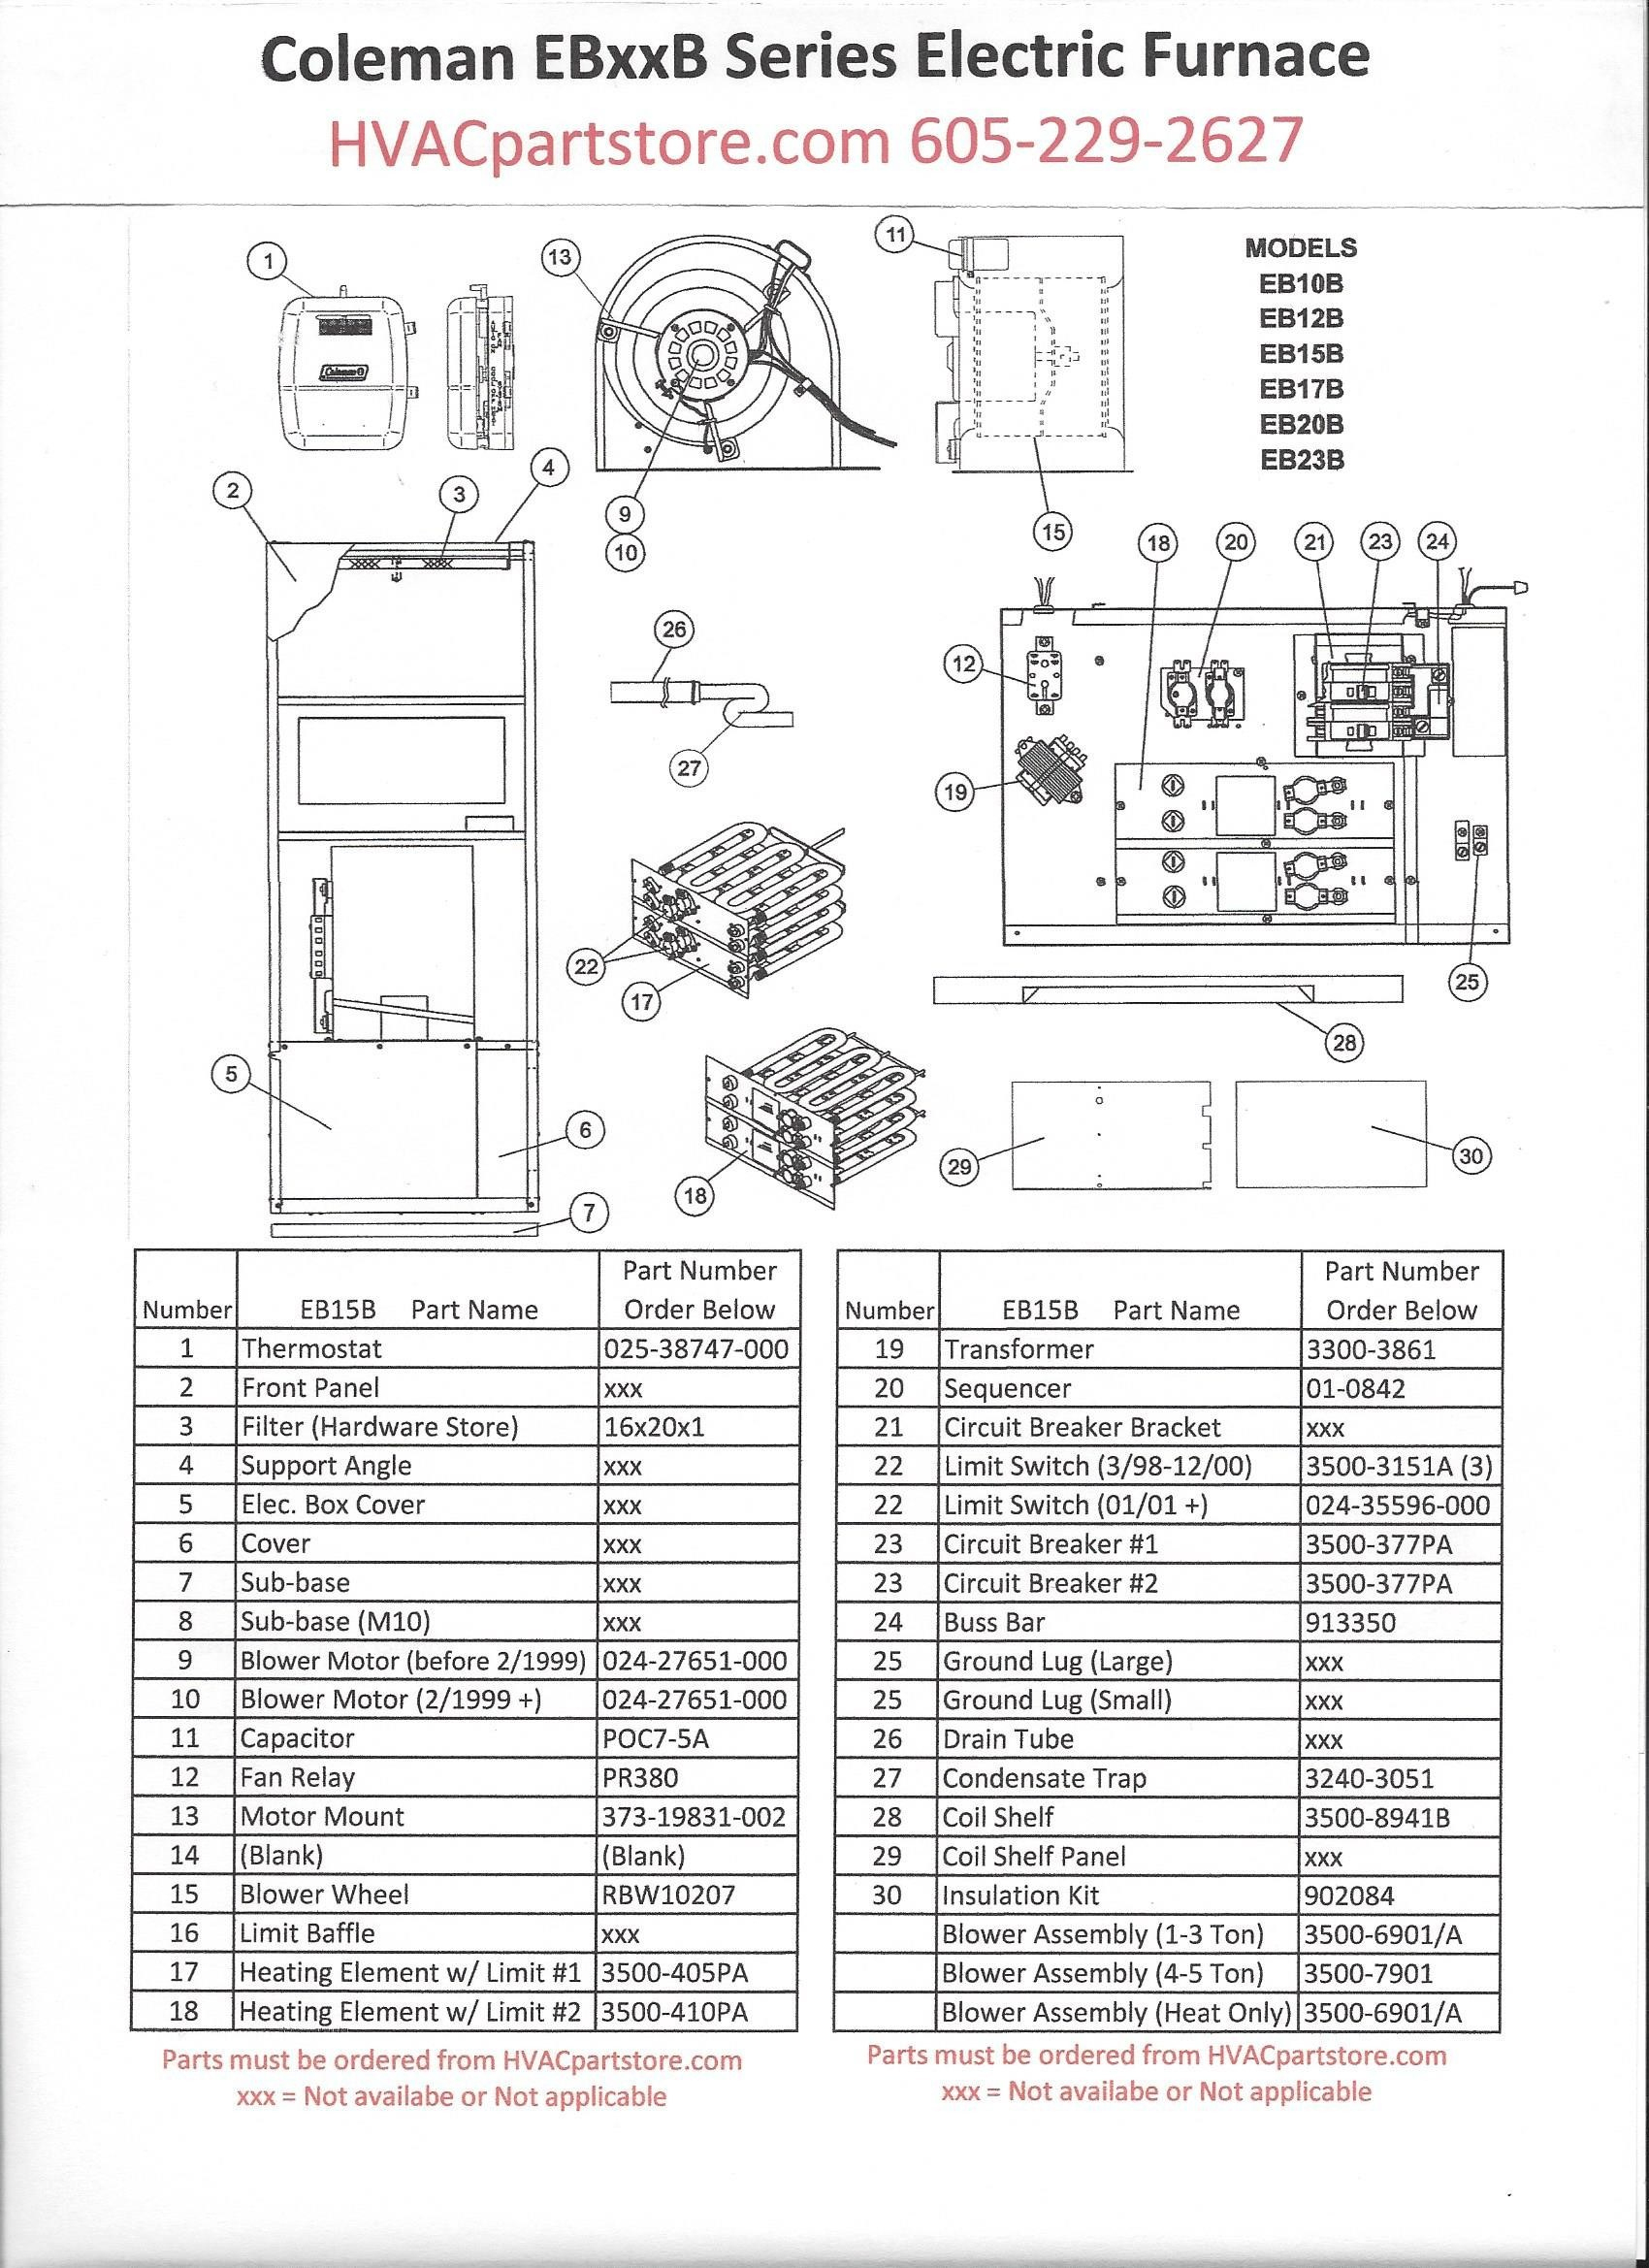 Payne Electric Furnace Sequencer Wiring Diagram   Wiring Diagram - Electric Furnace Wiring Diagram Sequencer